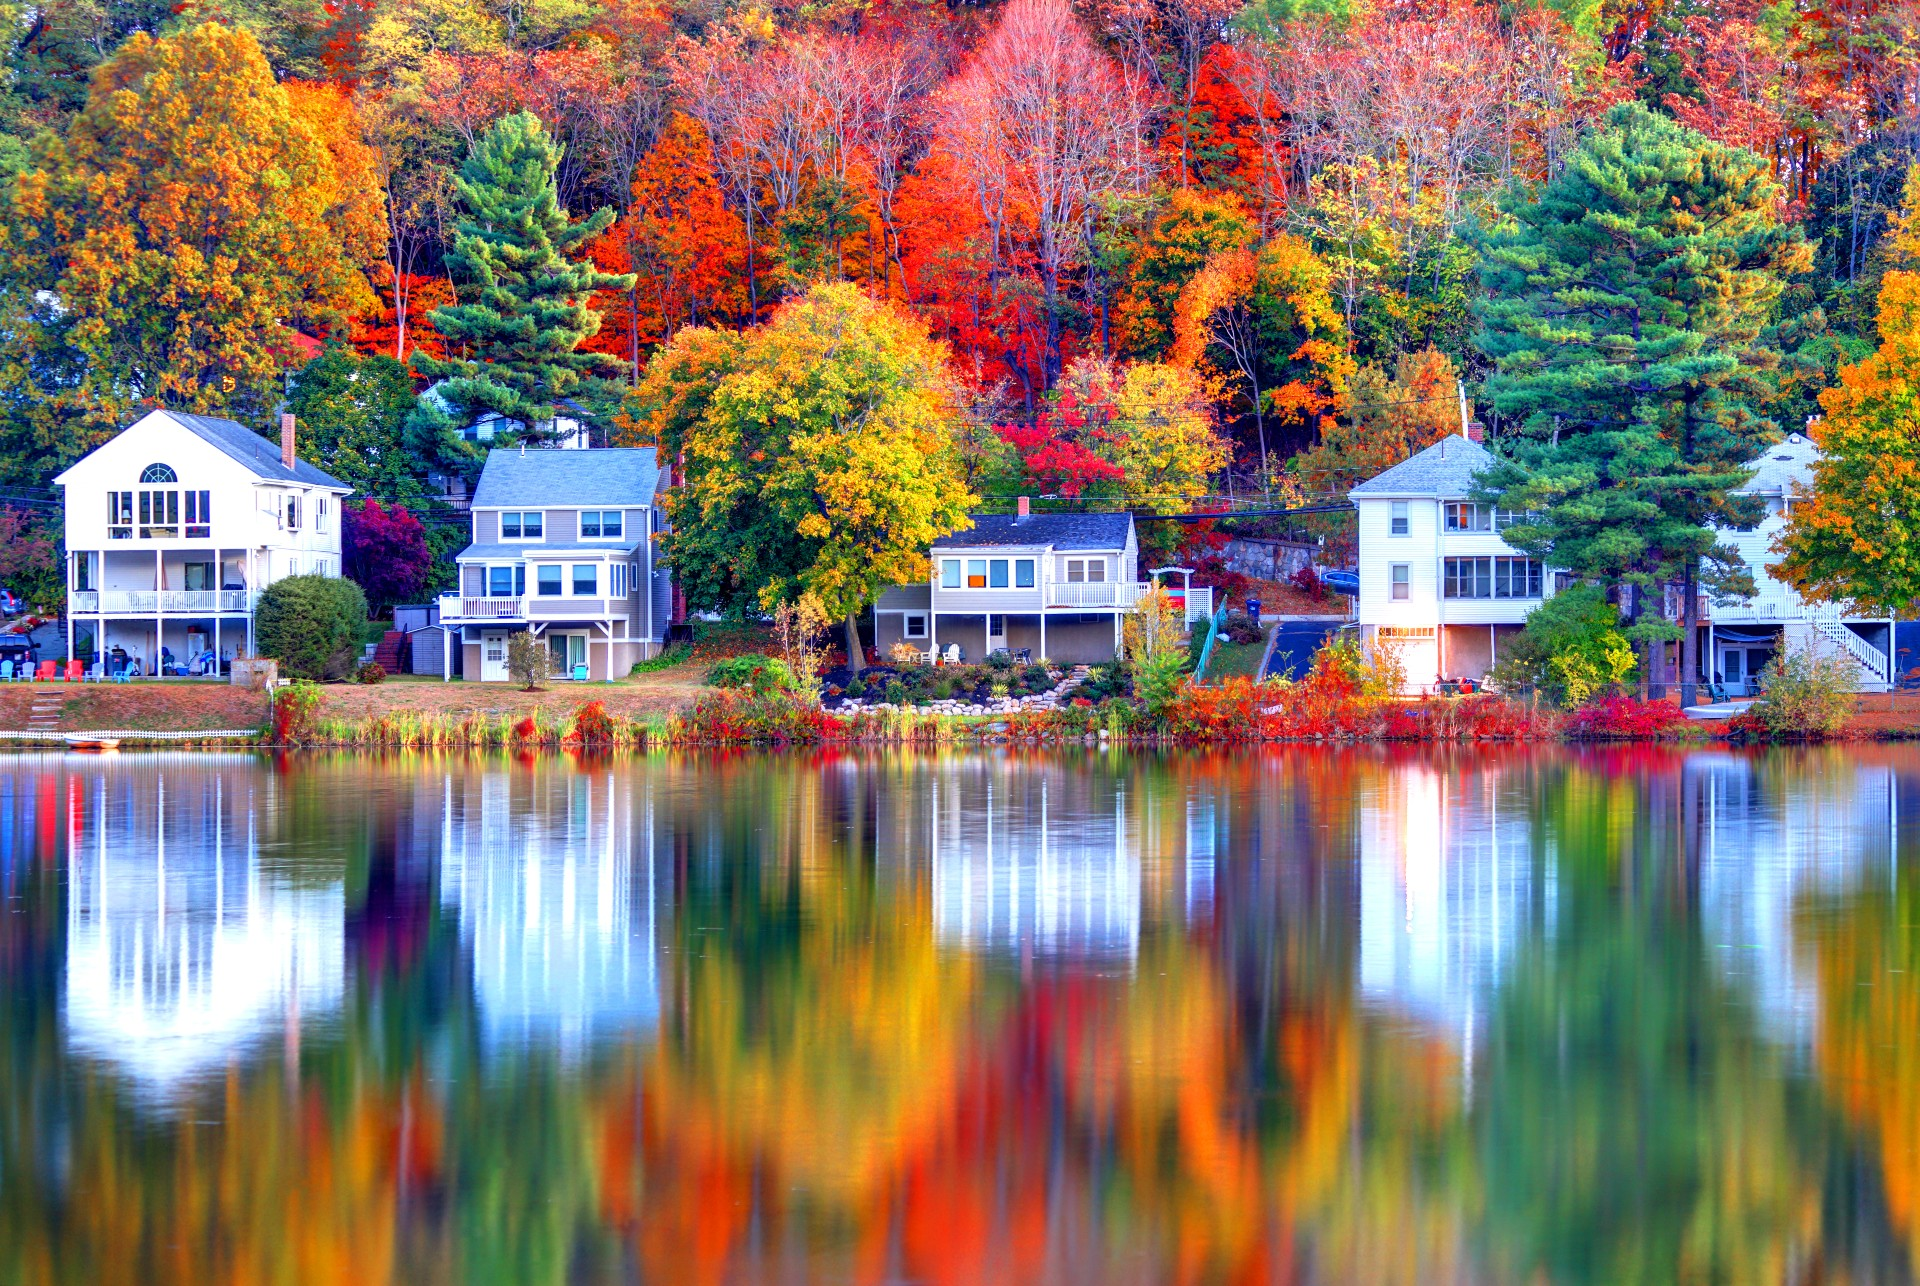 Aligned Houses and Autumn Tress at the back